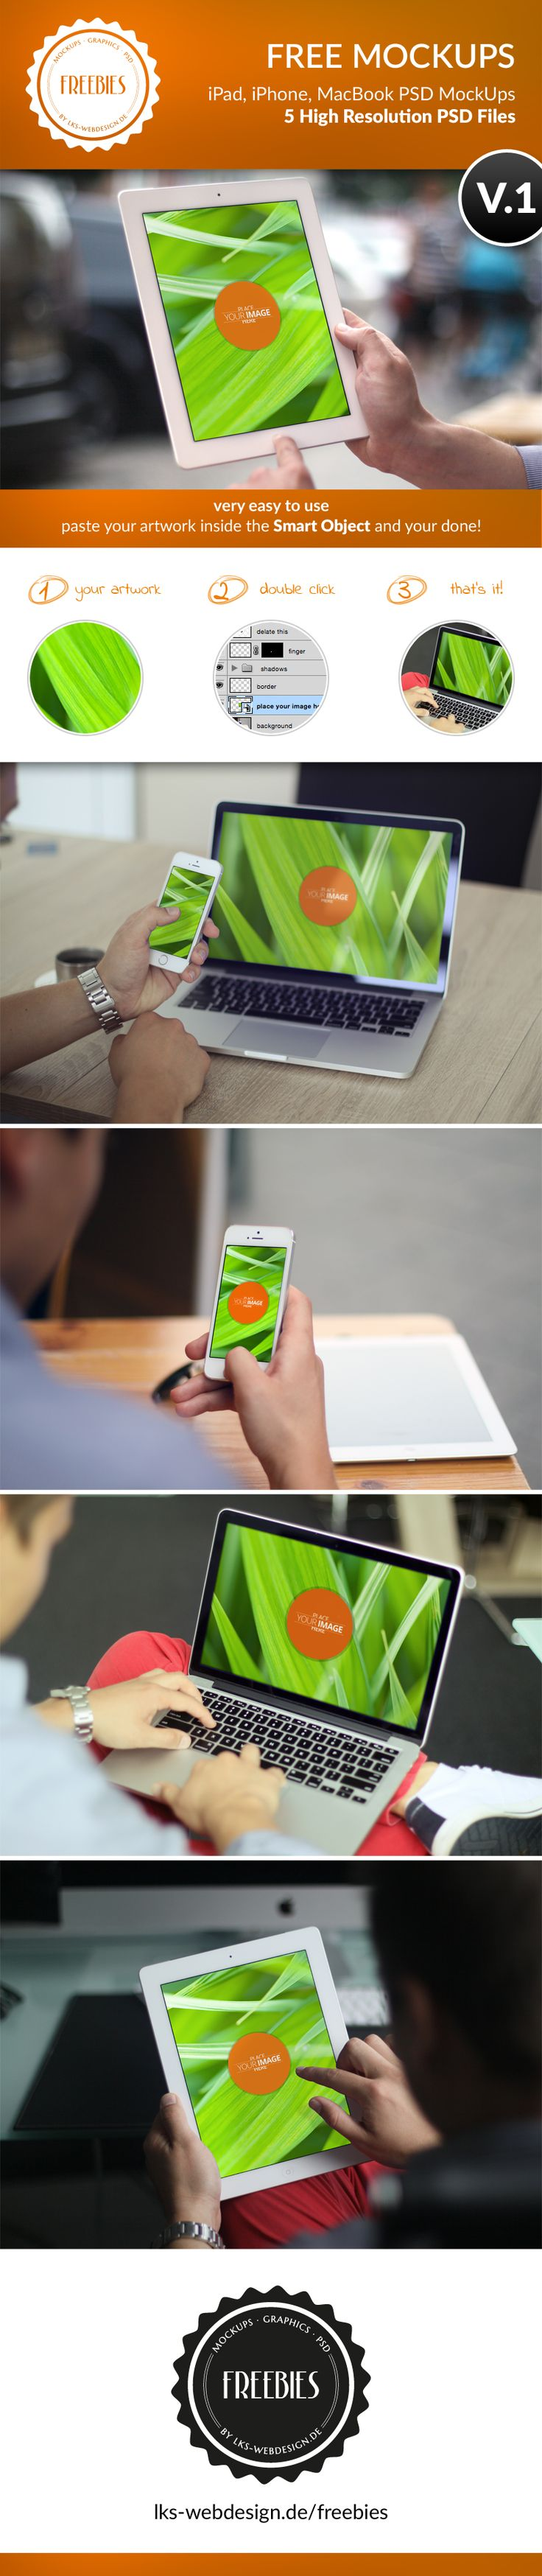 65 best ios device mockups images on pinterest mock up design